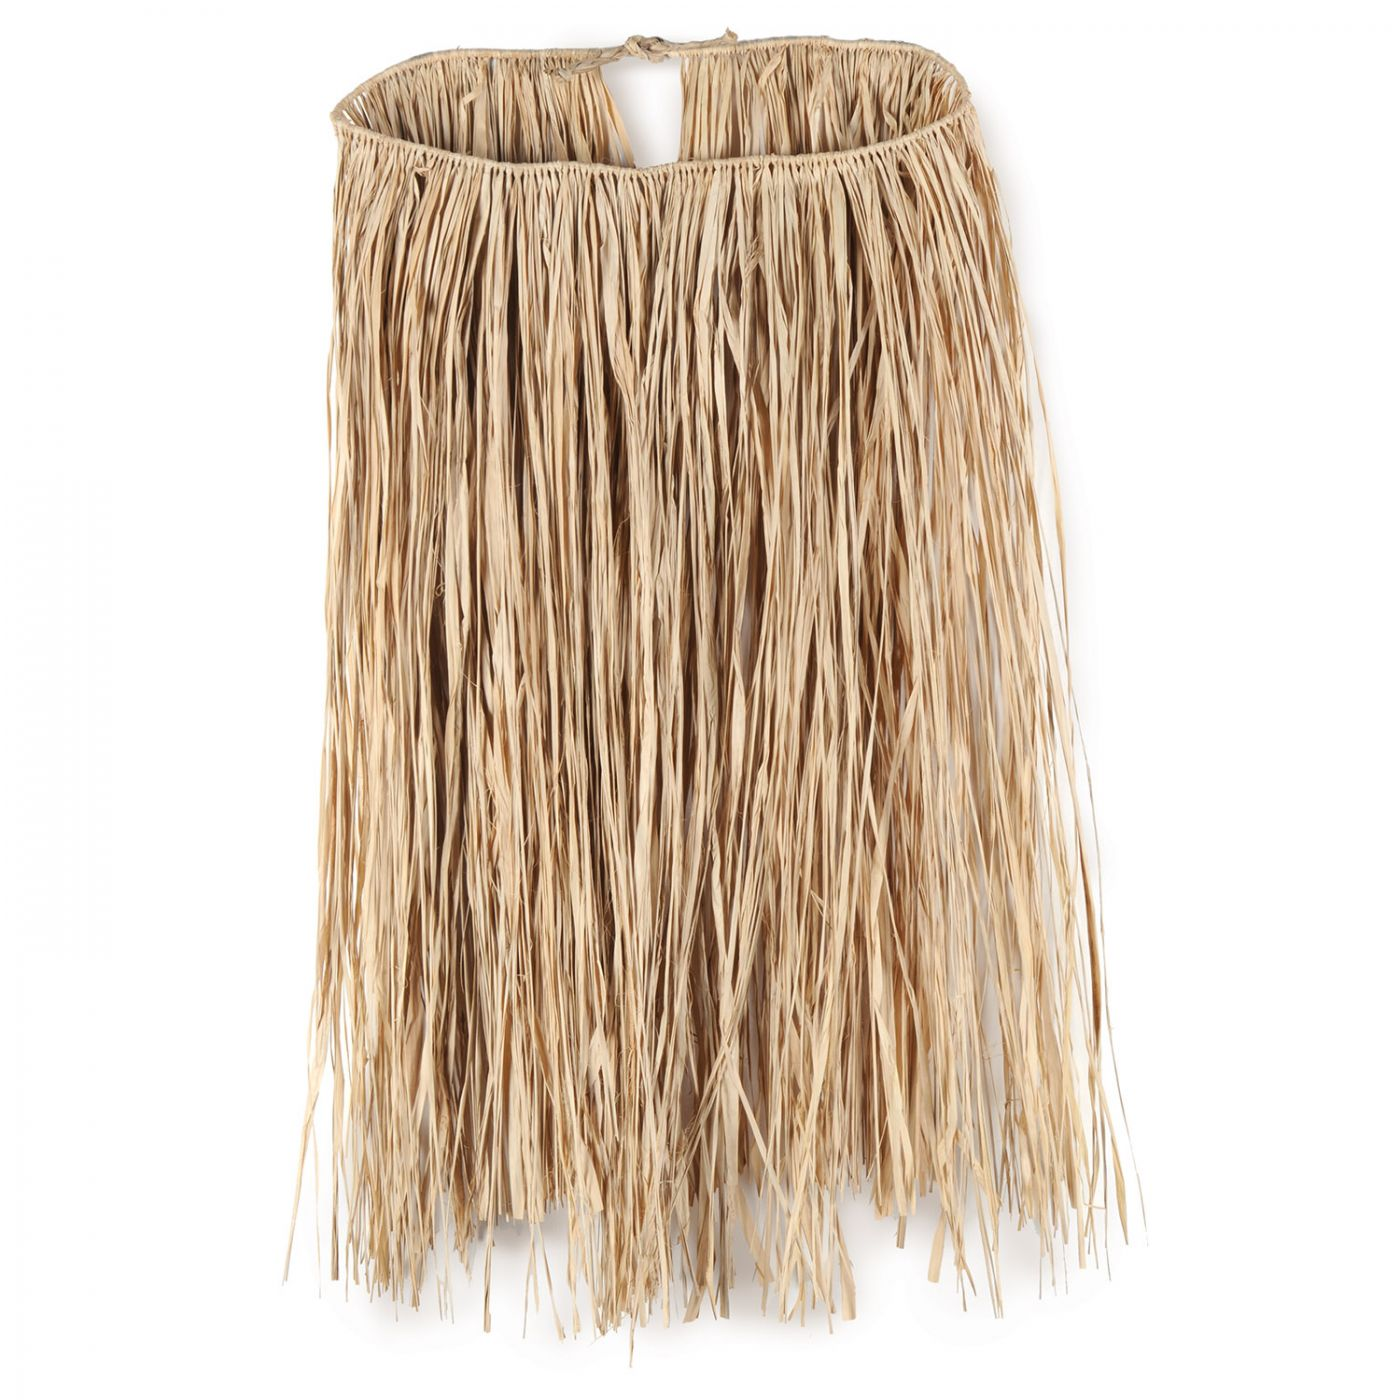 Child Raffia Hula Skirt image